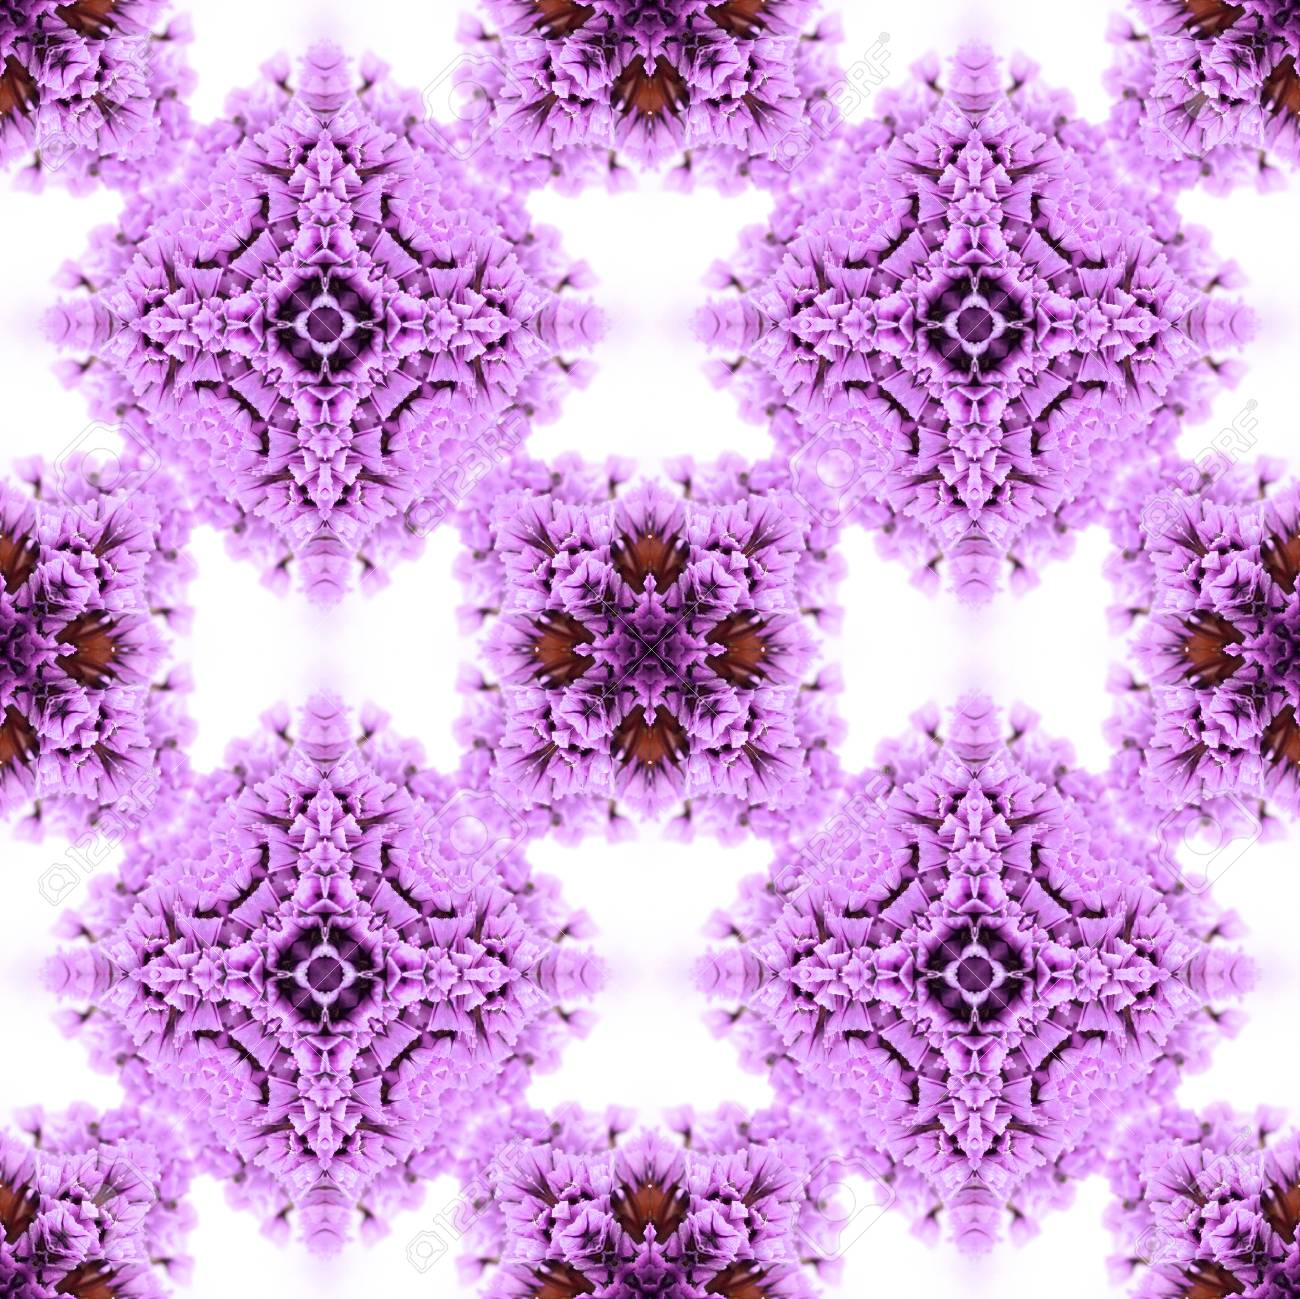 Abstract flowers seamless pattern background. Kaleidoscope from flowers. Hydraulic tile design. - 104074904